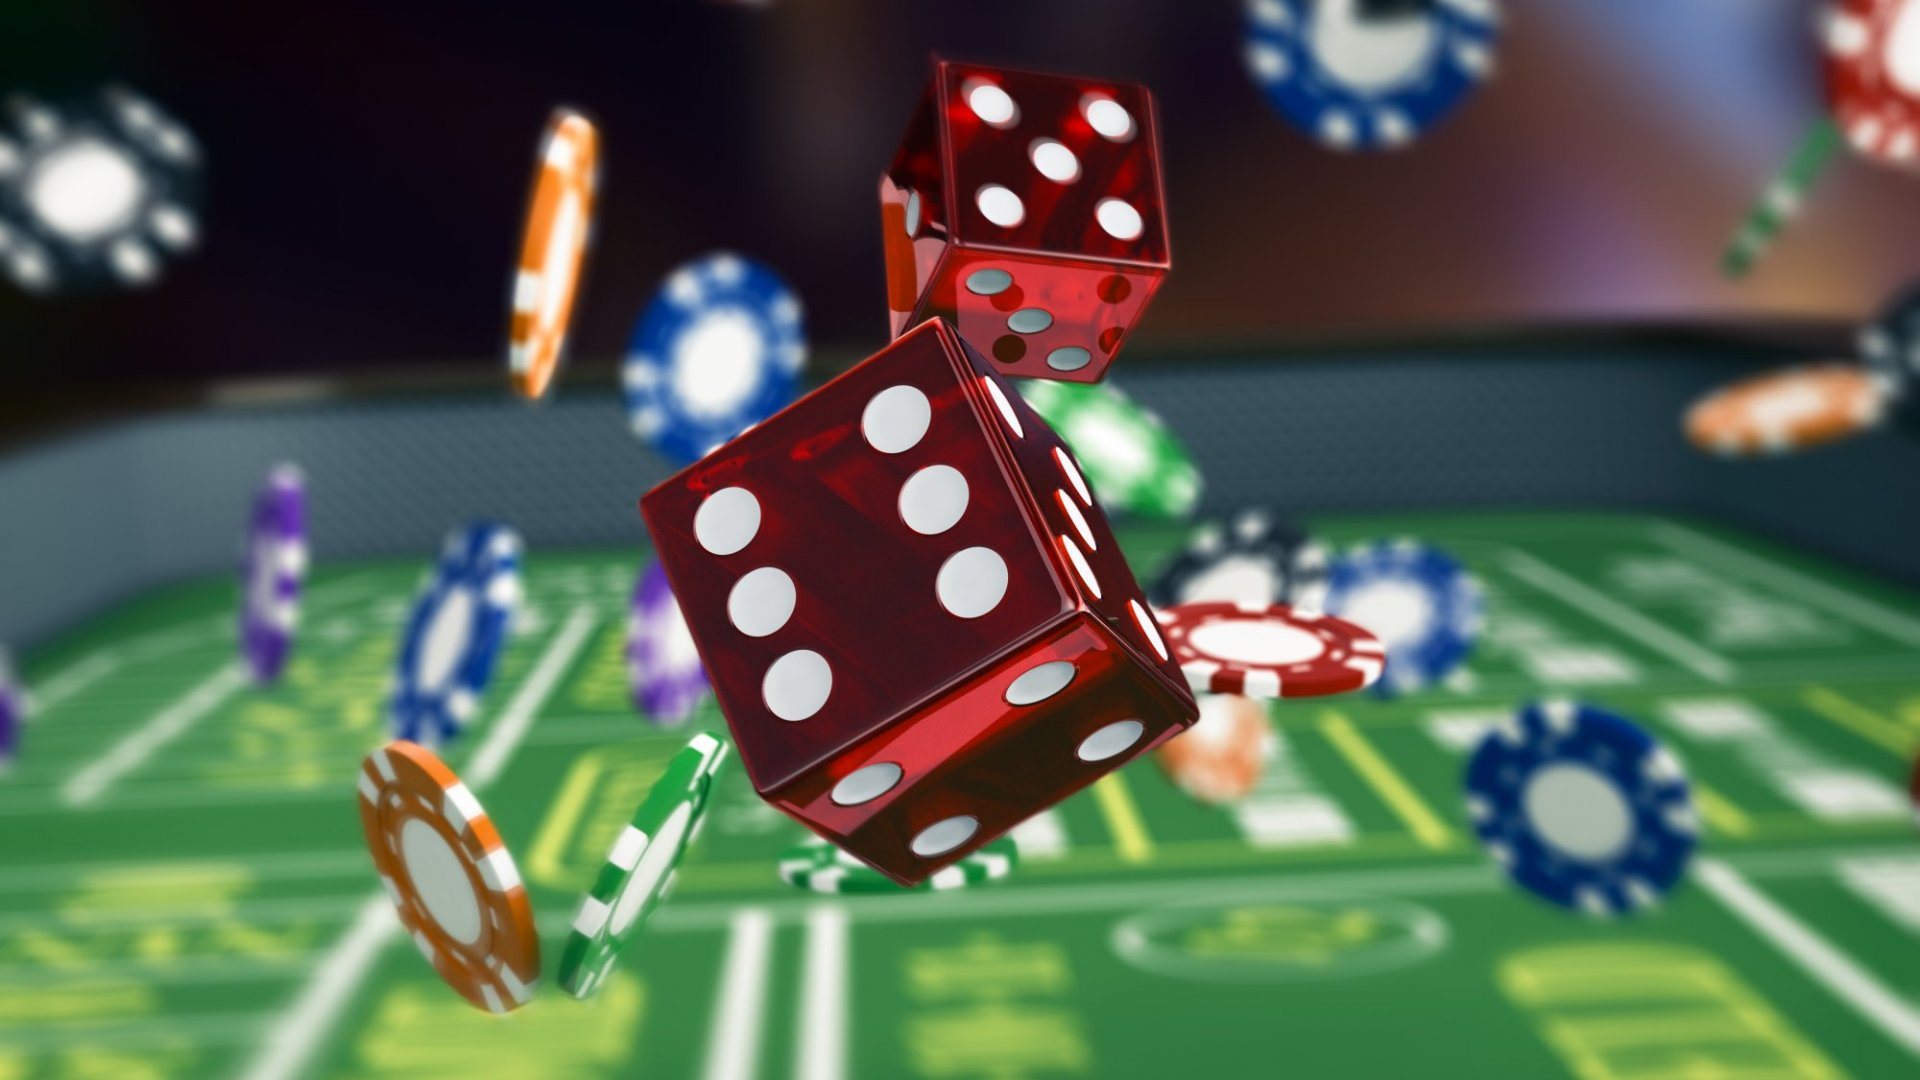 How Tech Developments Have Increased Demand for Online Casinos